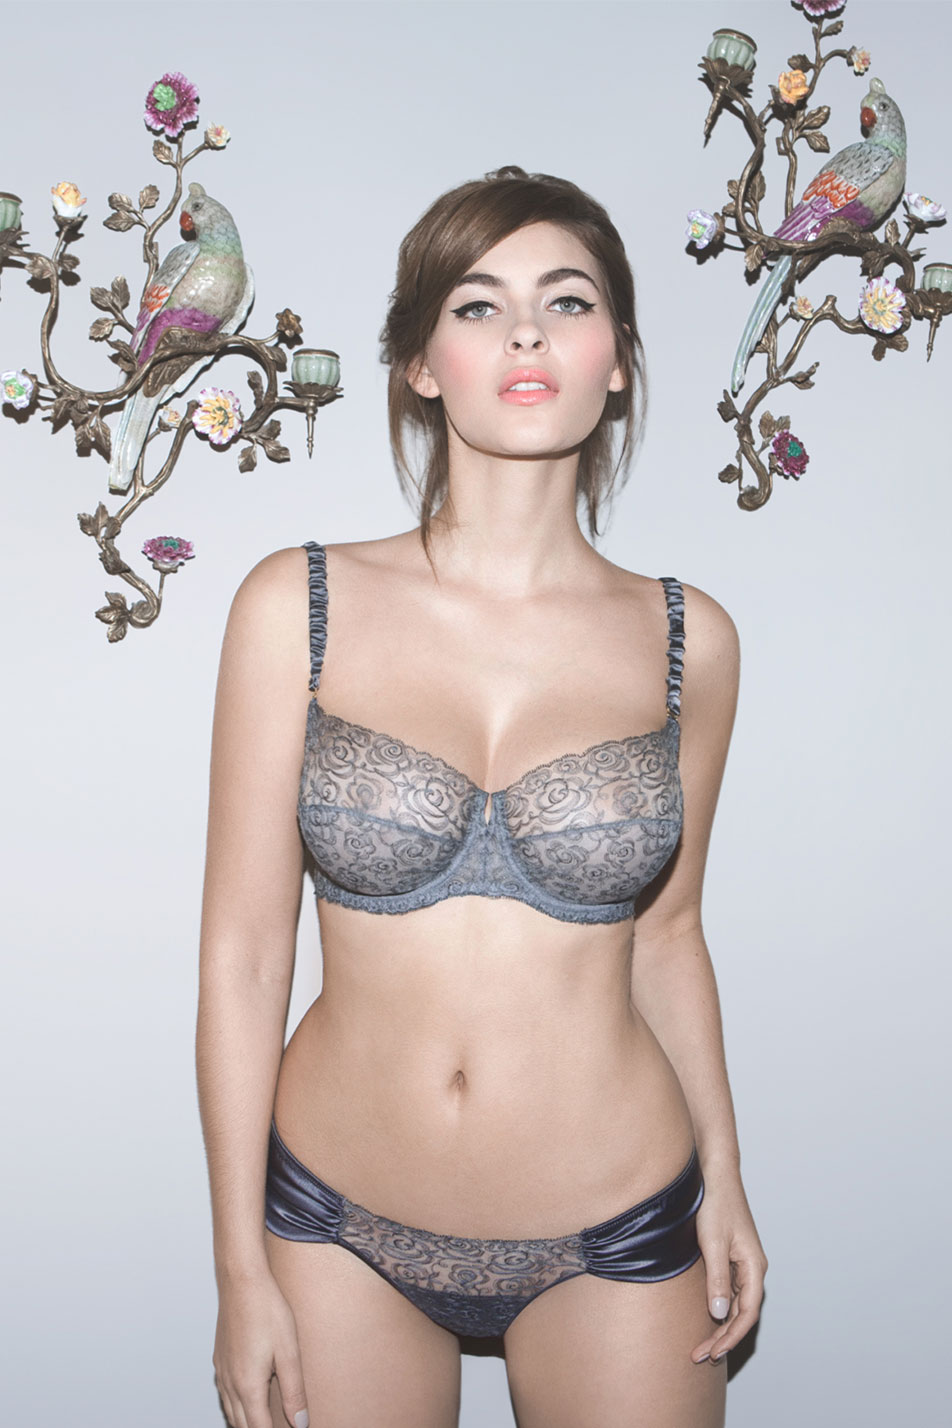 dadf76fa3e The Lingerie Addict Awards  The 20 Best Lingerie Brands of 2015 ...